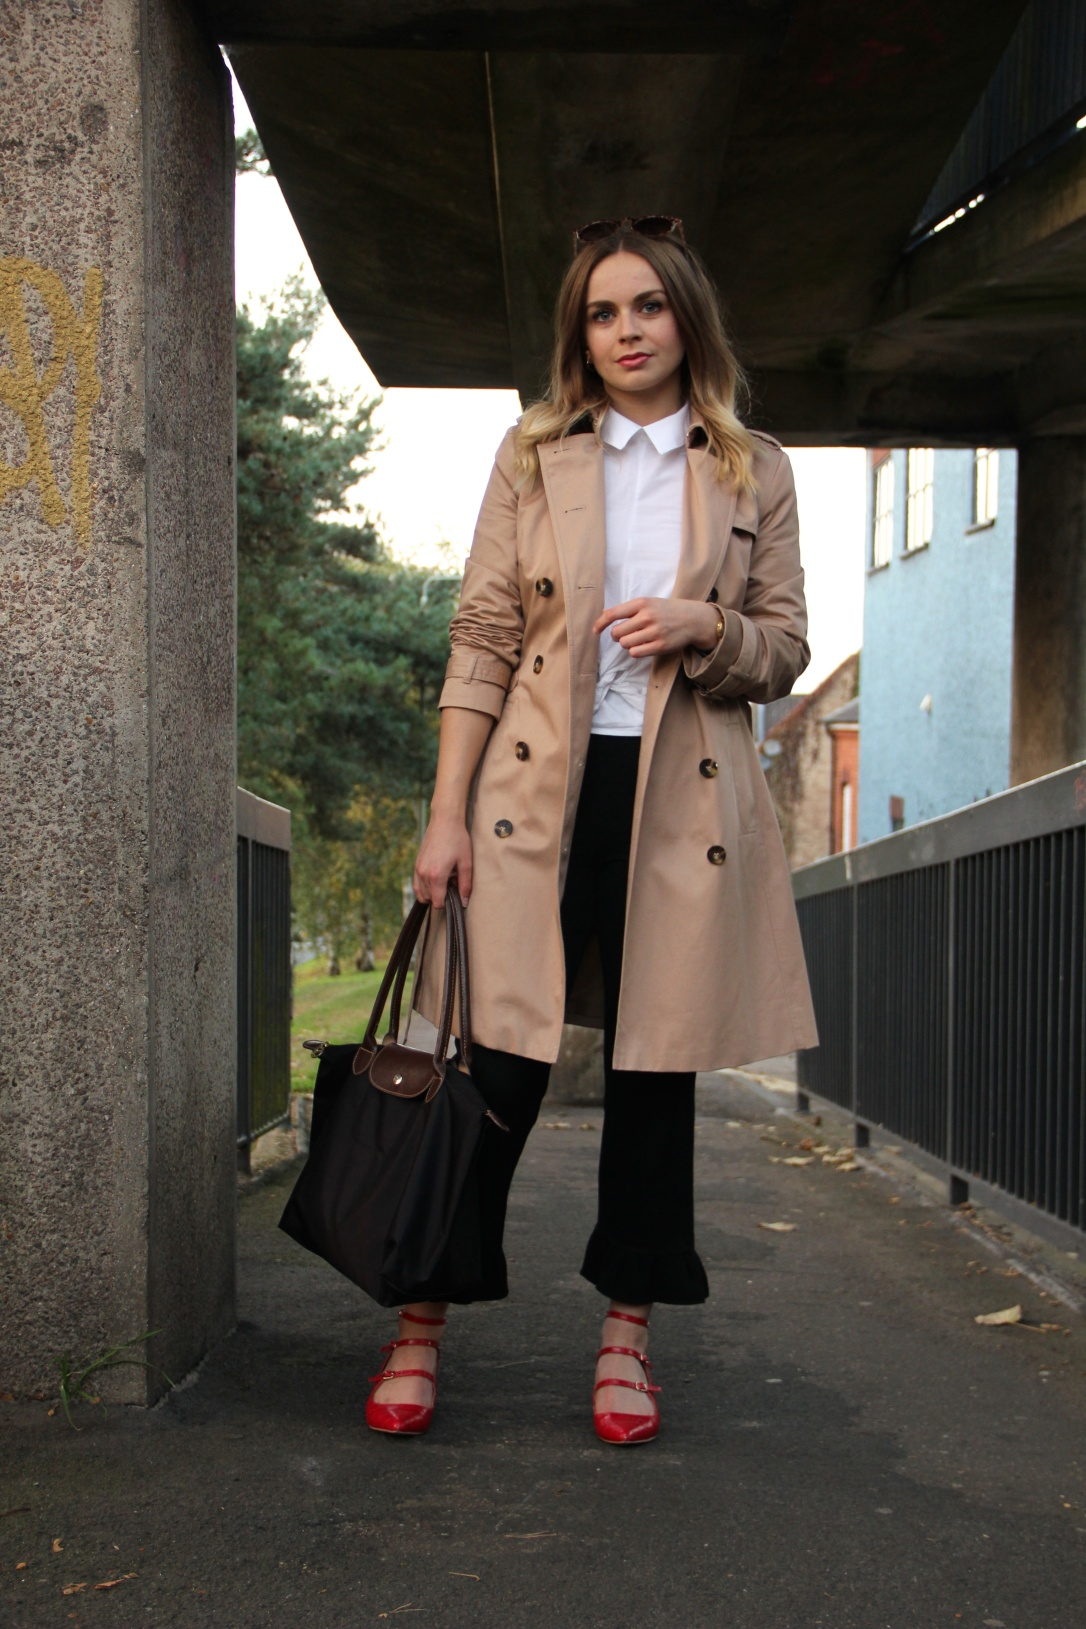 How to wear a trench coat for work